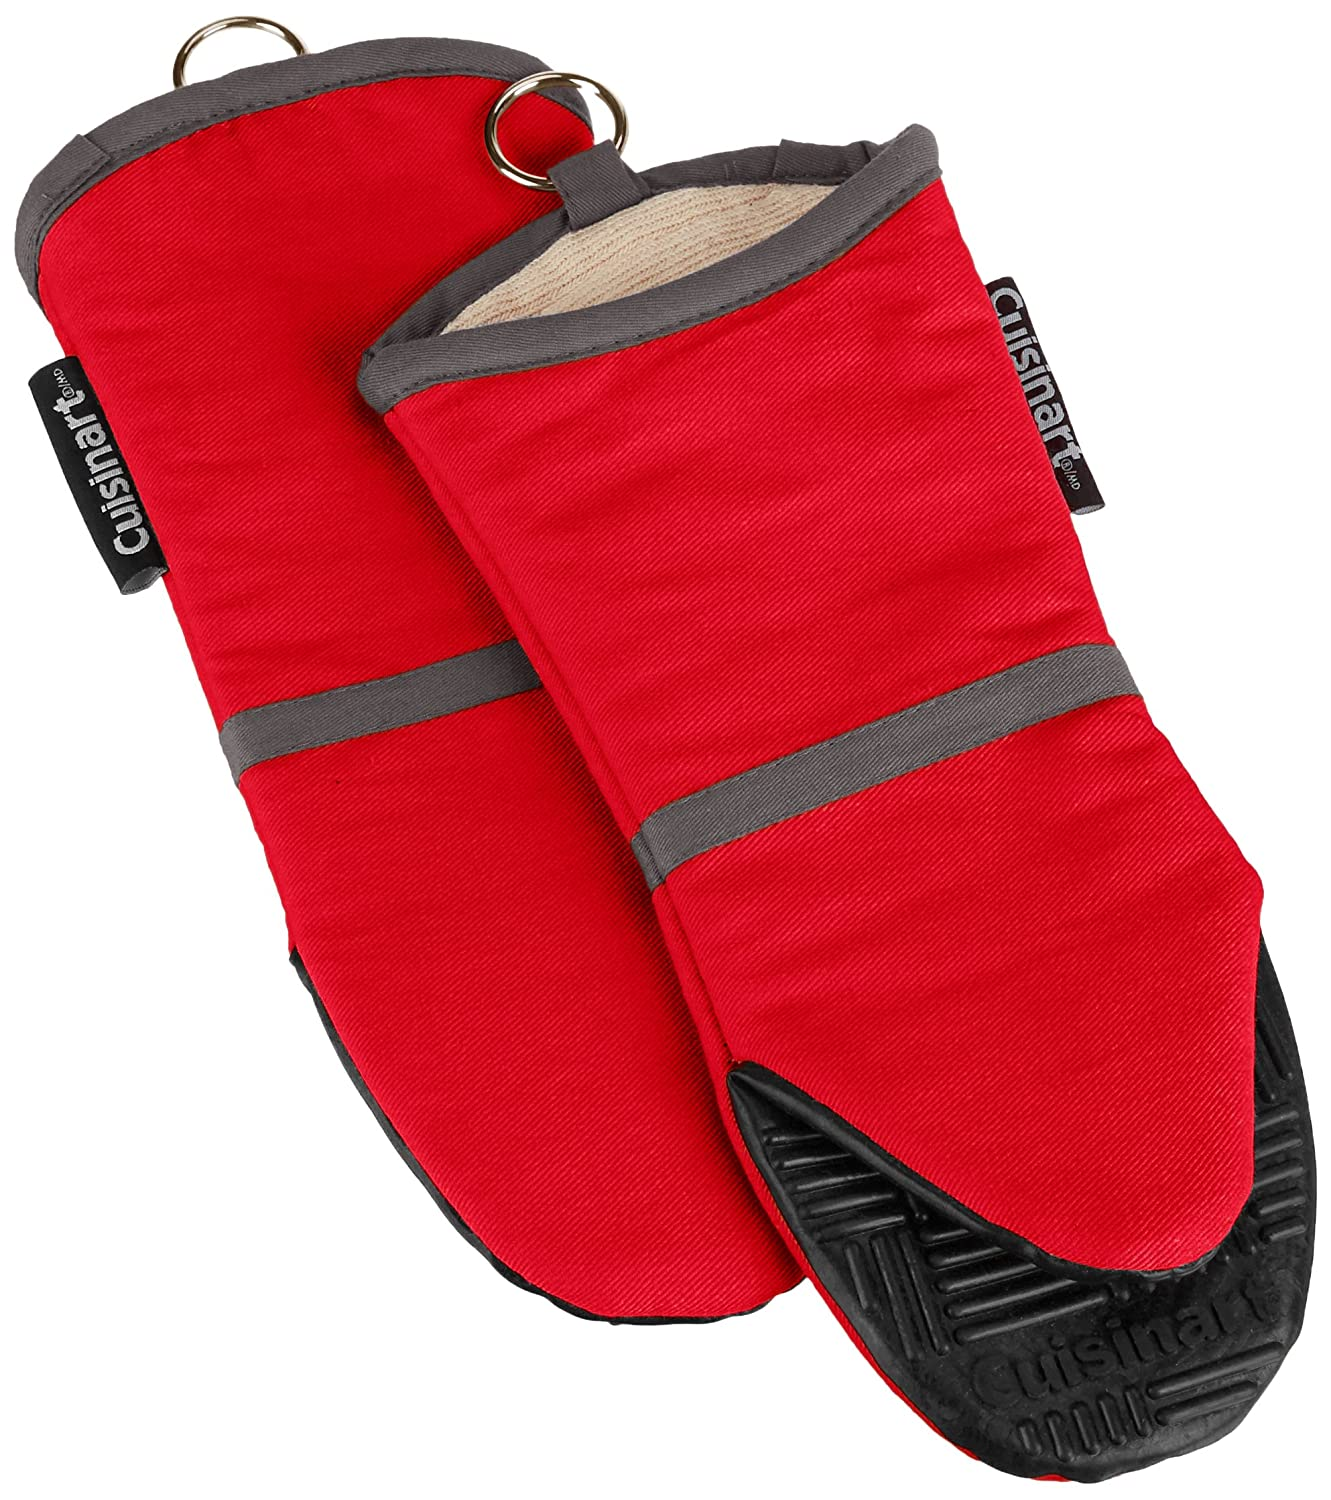 Cuisinart Oven Mitt with Non-Slip Silicone Grip, Heat Resistant to 500° F, Red, 2-Pack